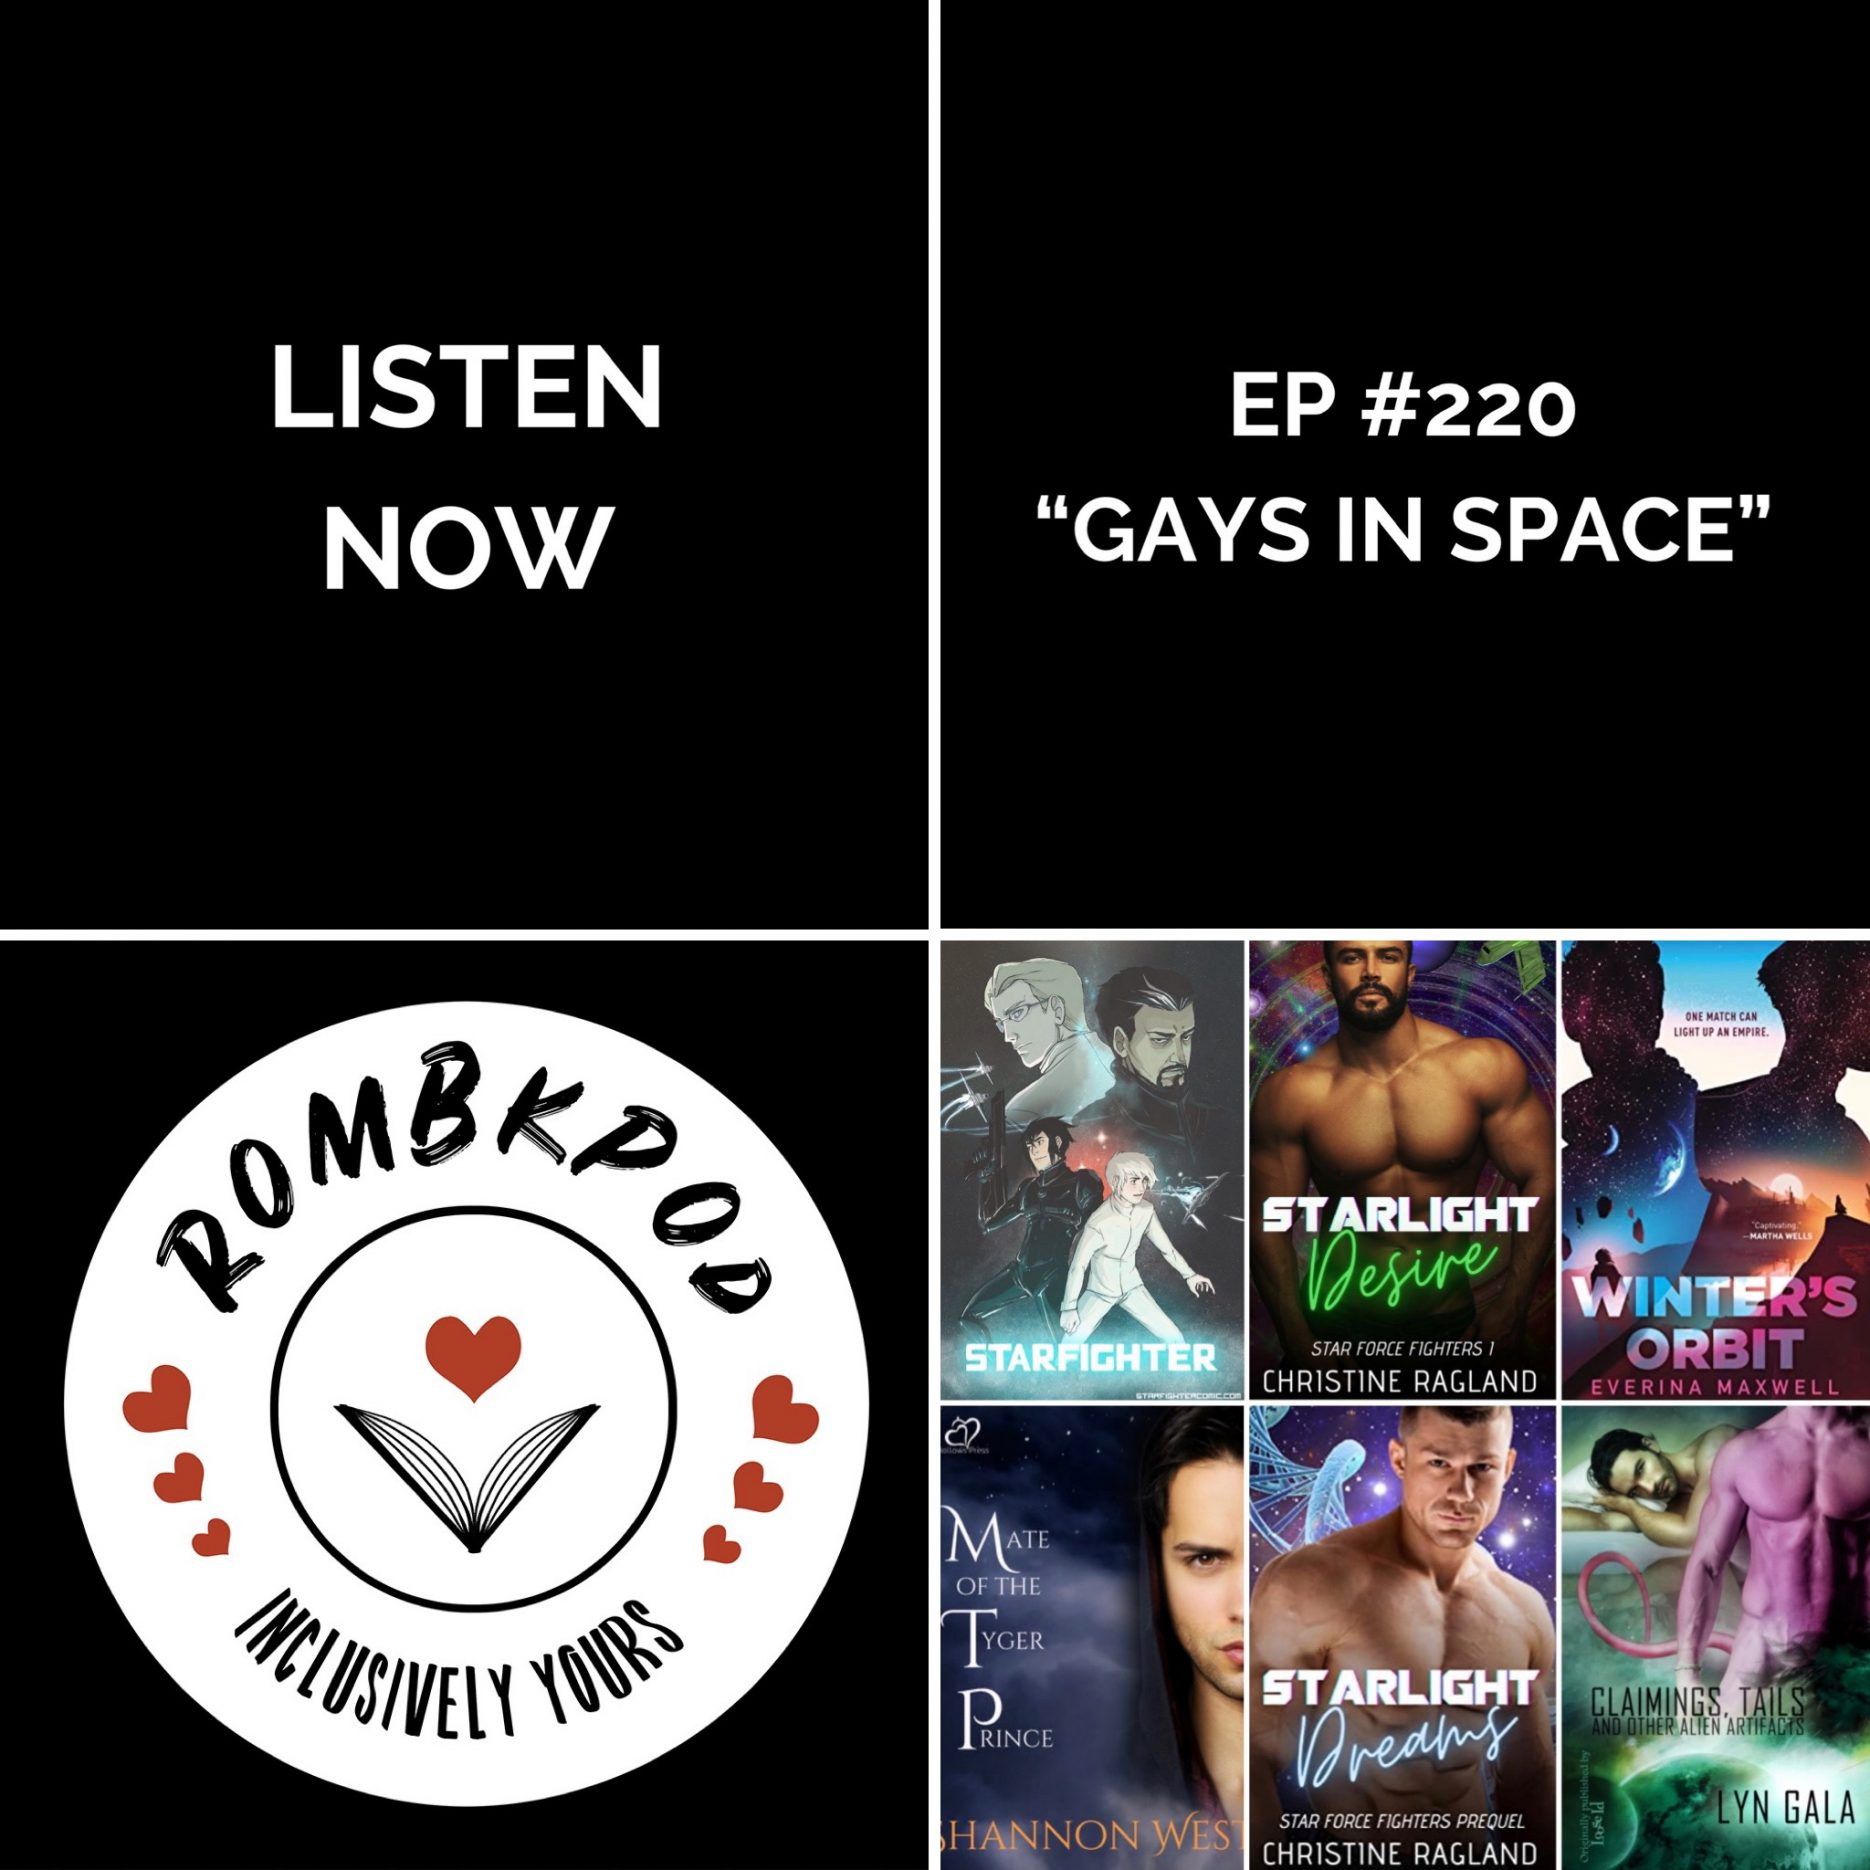 """IMAGE: lower left corner, RomBkPod heart logo; lower right corner, ep #220 book cover collage; IMAGE TEXT: Listen Now, ep #220 """"Gays in Space"""""""